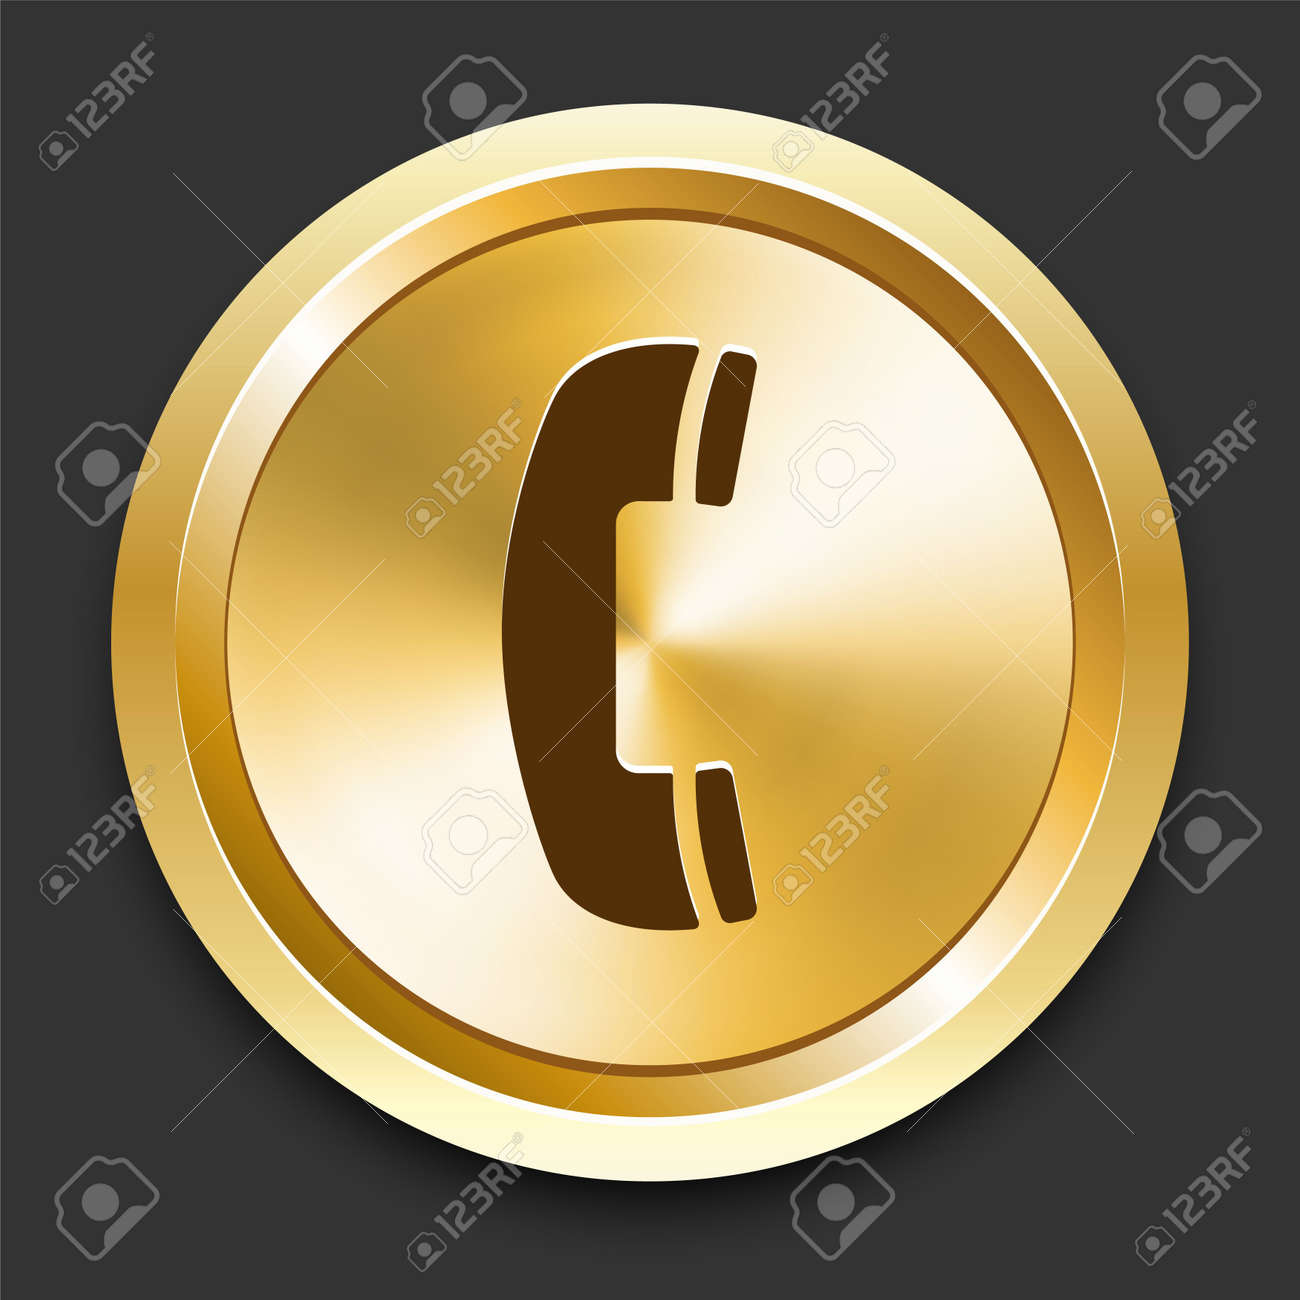 Telephone on Golden Internet Button